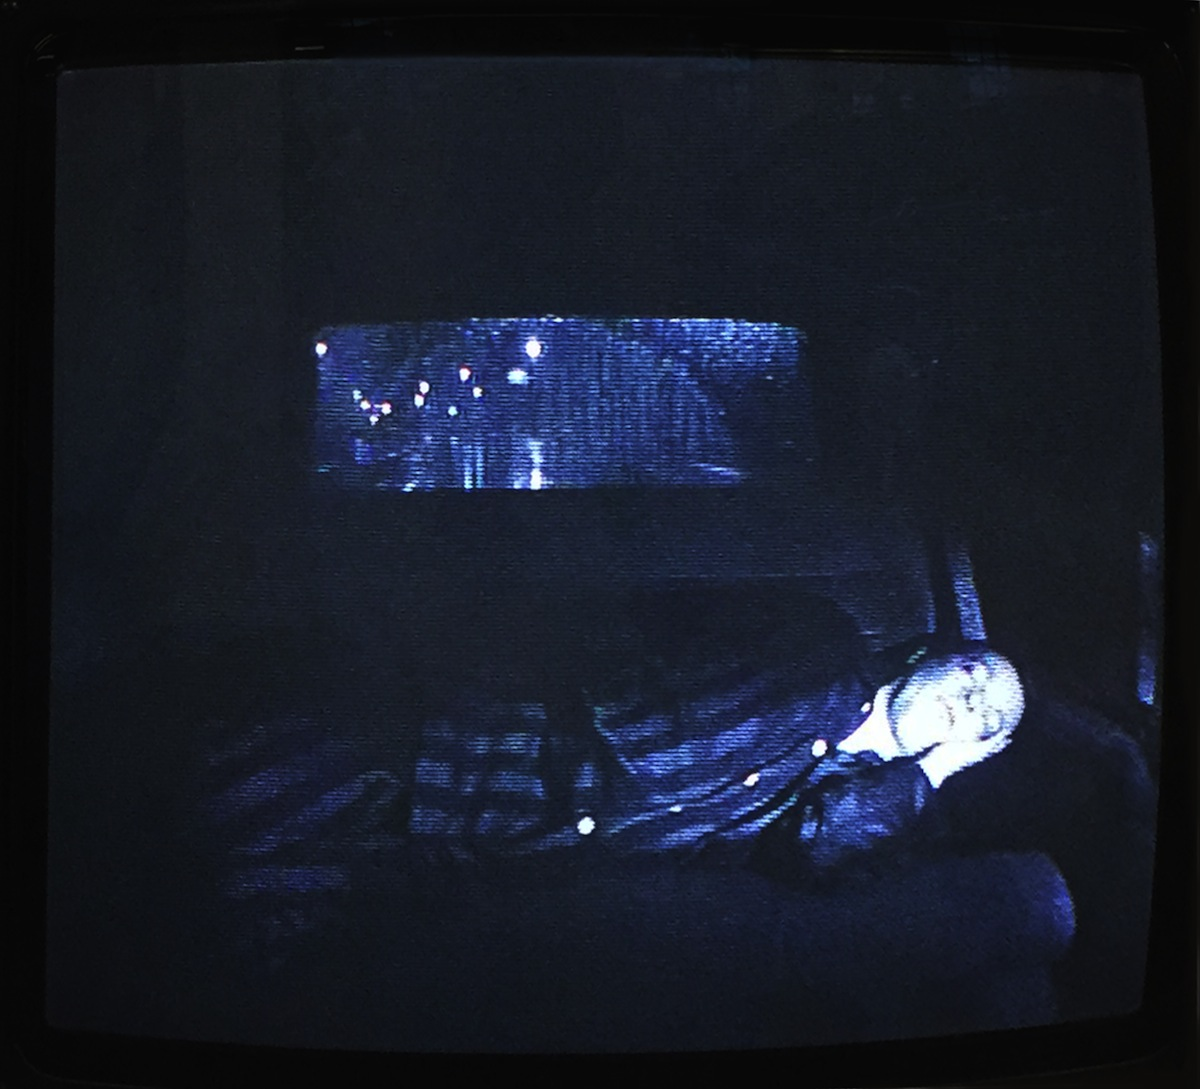 Rodney Graham, Halcion Sleep, 1994, Laserdisc/DVD, 26 minutes. Courtesy of the artist and 303 Gallery, New York.